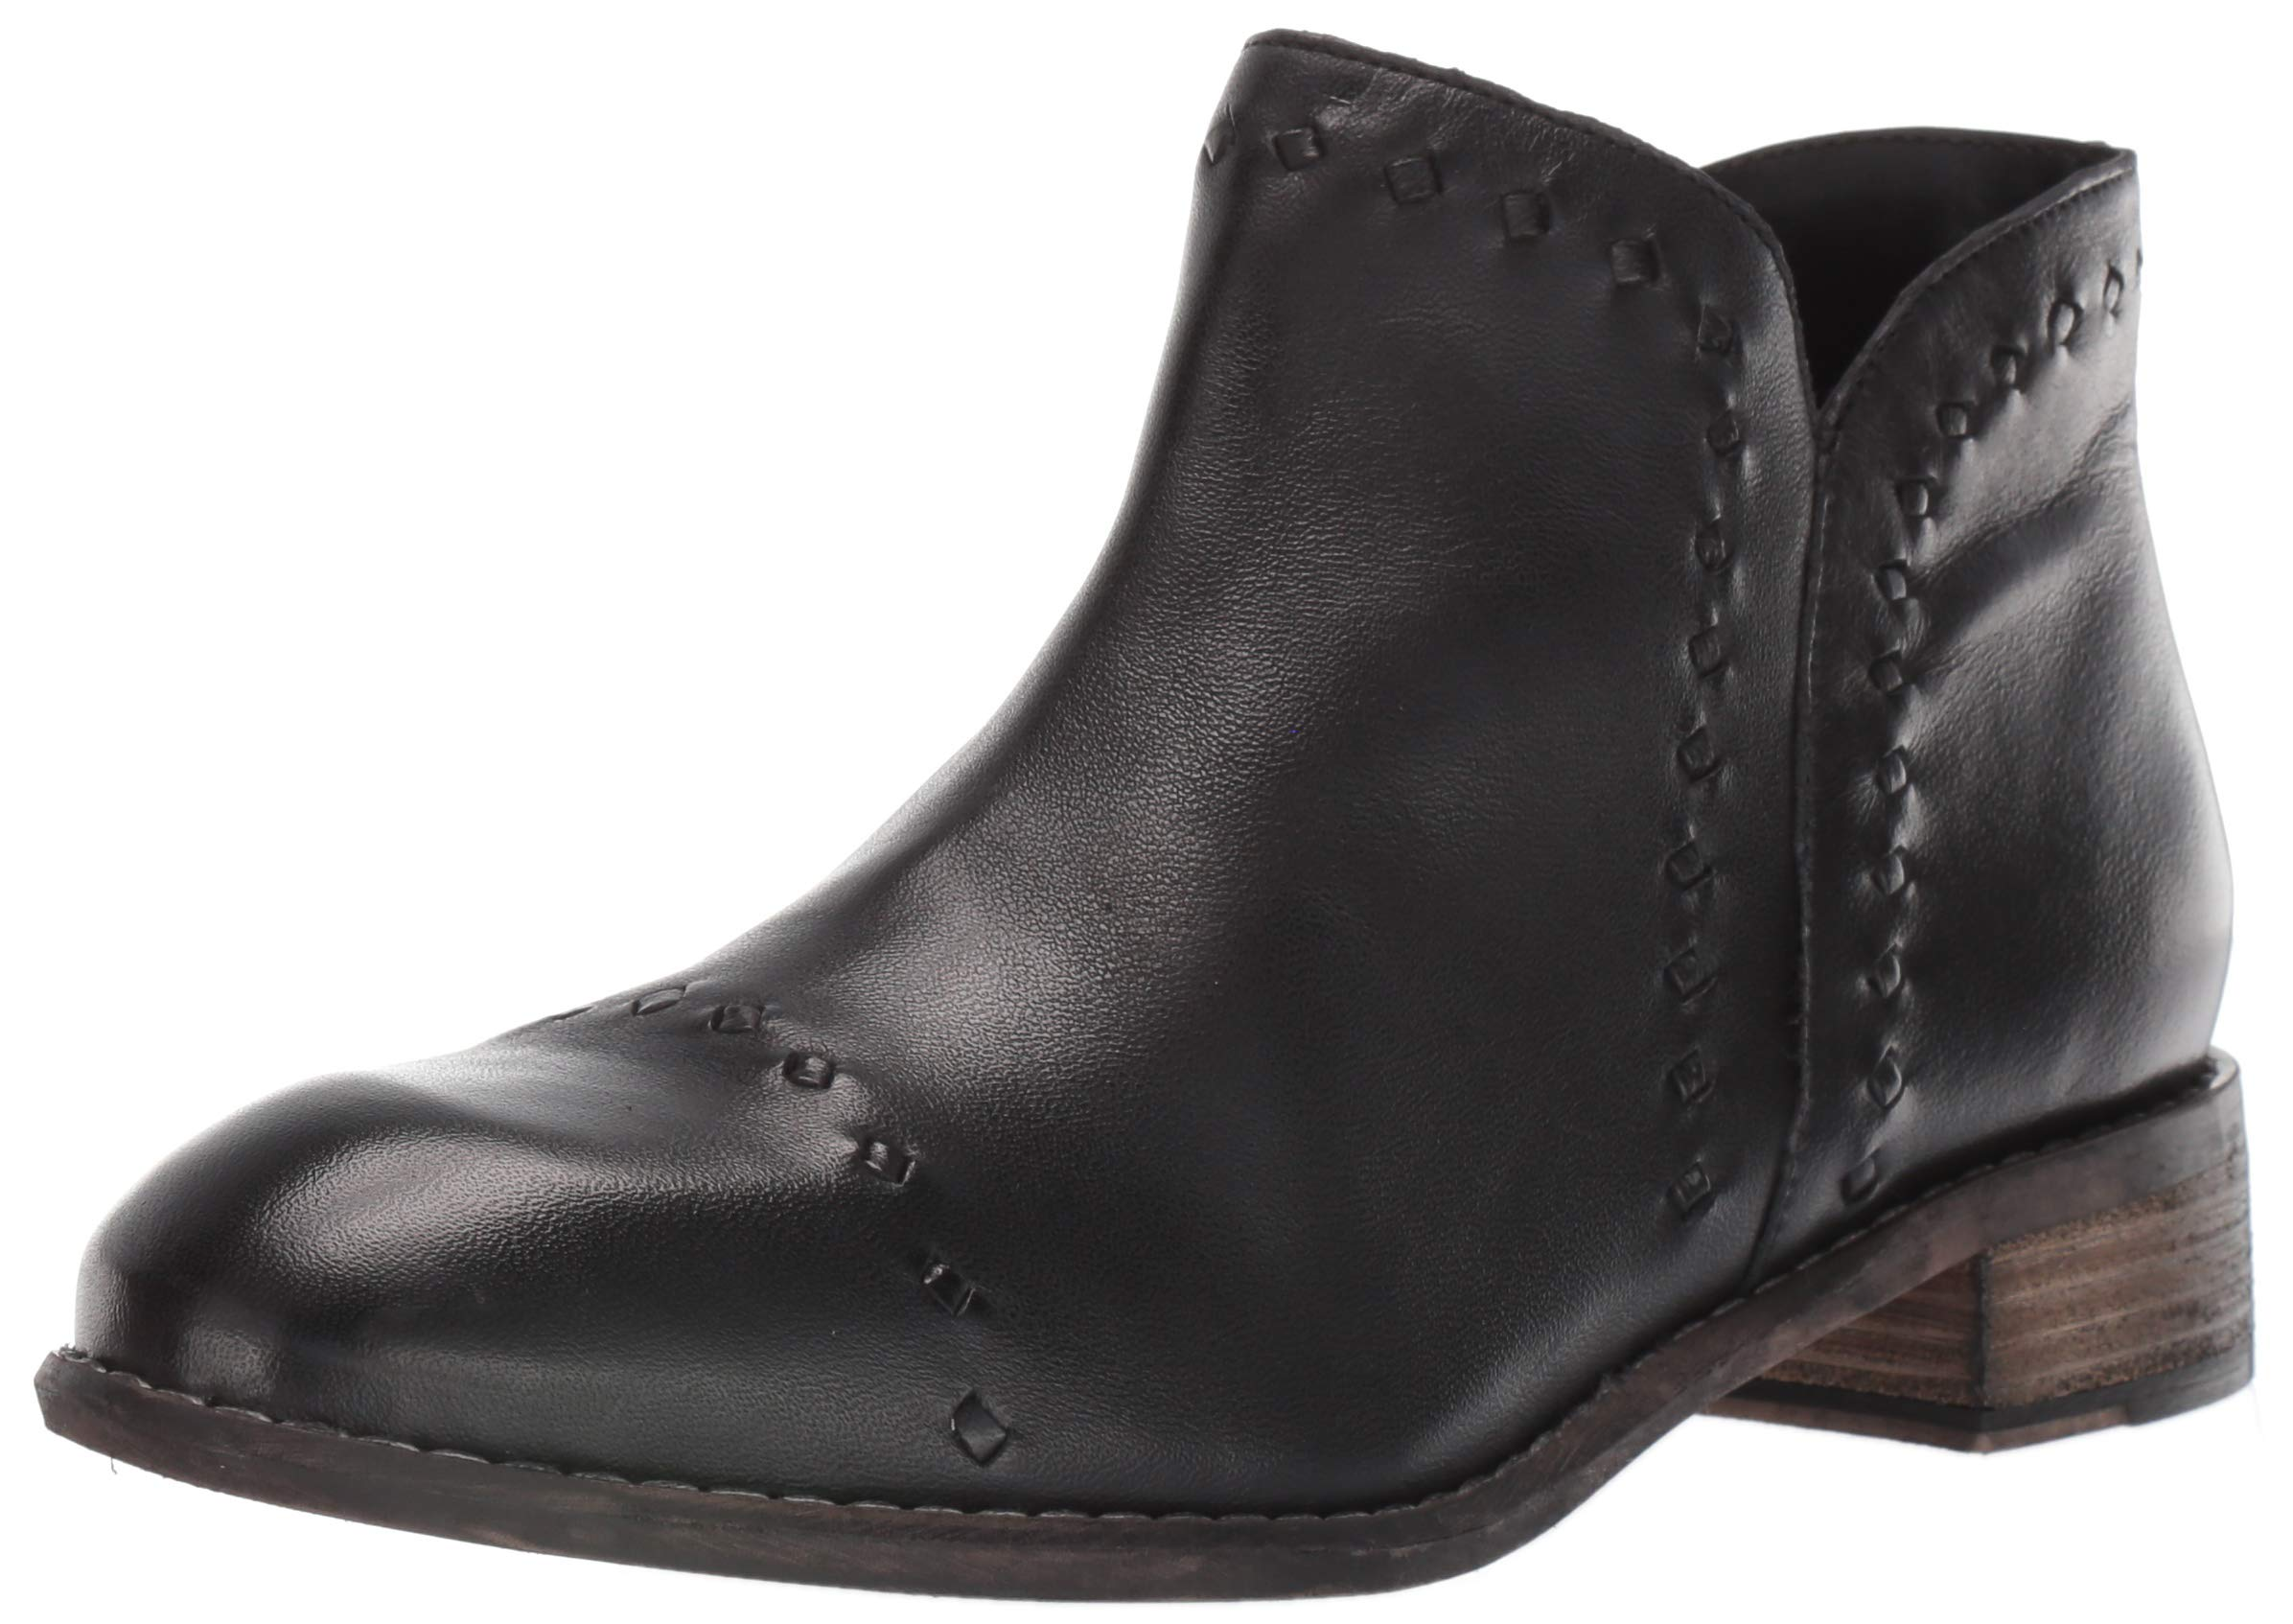 Skechers Women's Rue-Dominique-Smooth Oiled Leather Upper Zipper Side Ankle Boot